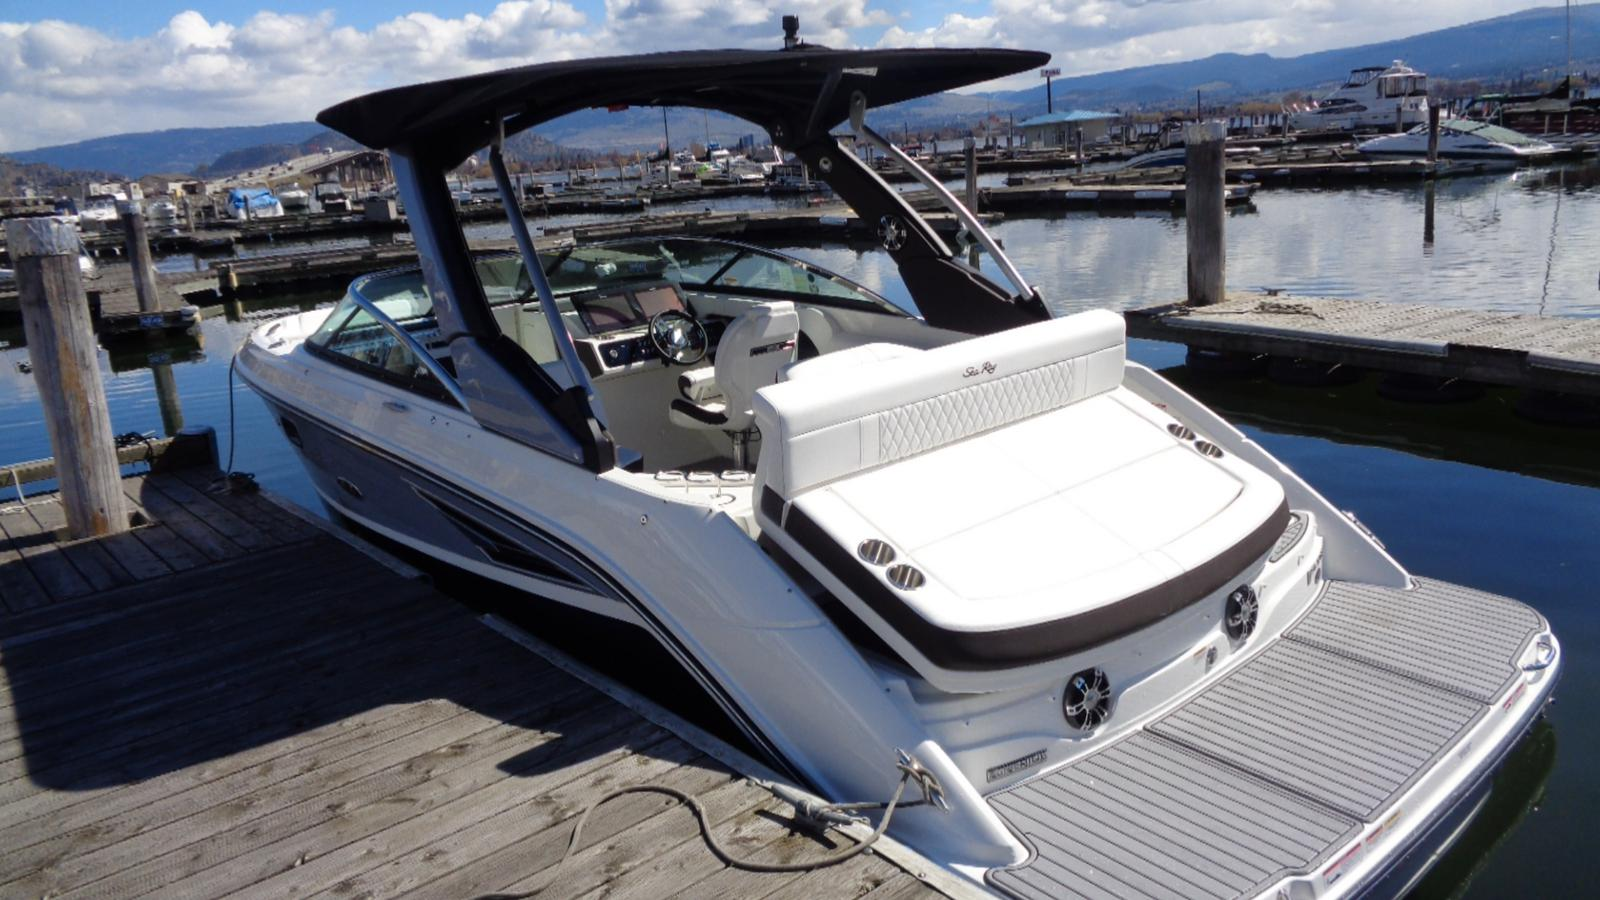 2019 Sea Ray boat for sale, model of the boat is SLX 250 & Image # 6 of 11